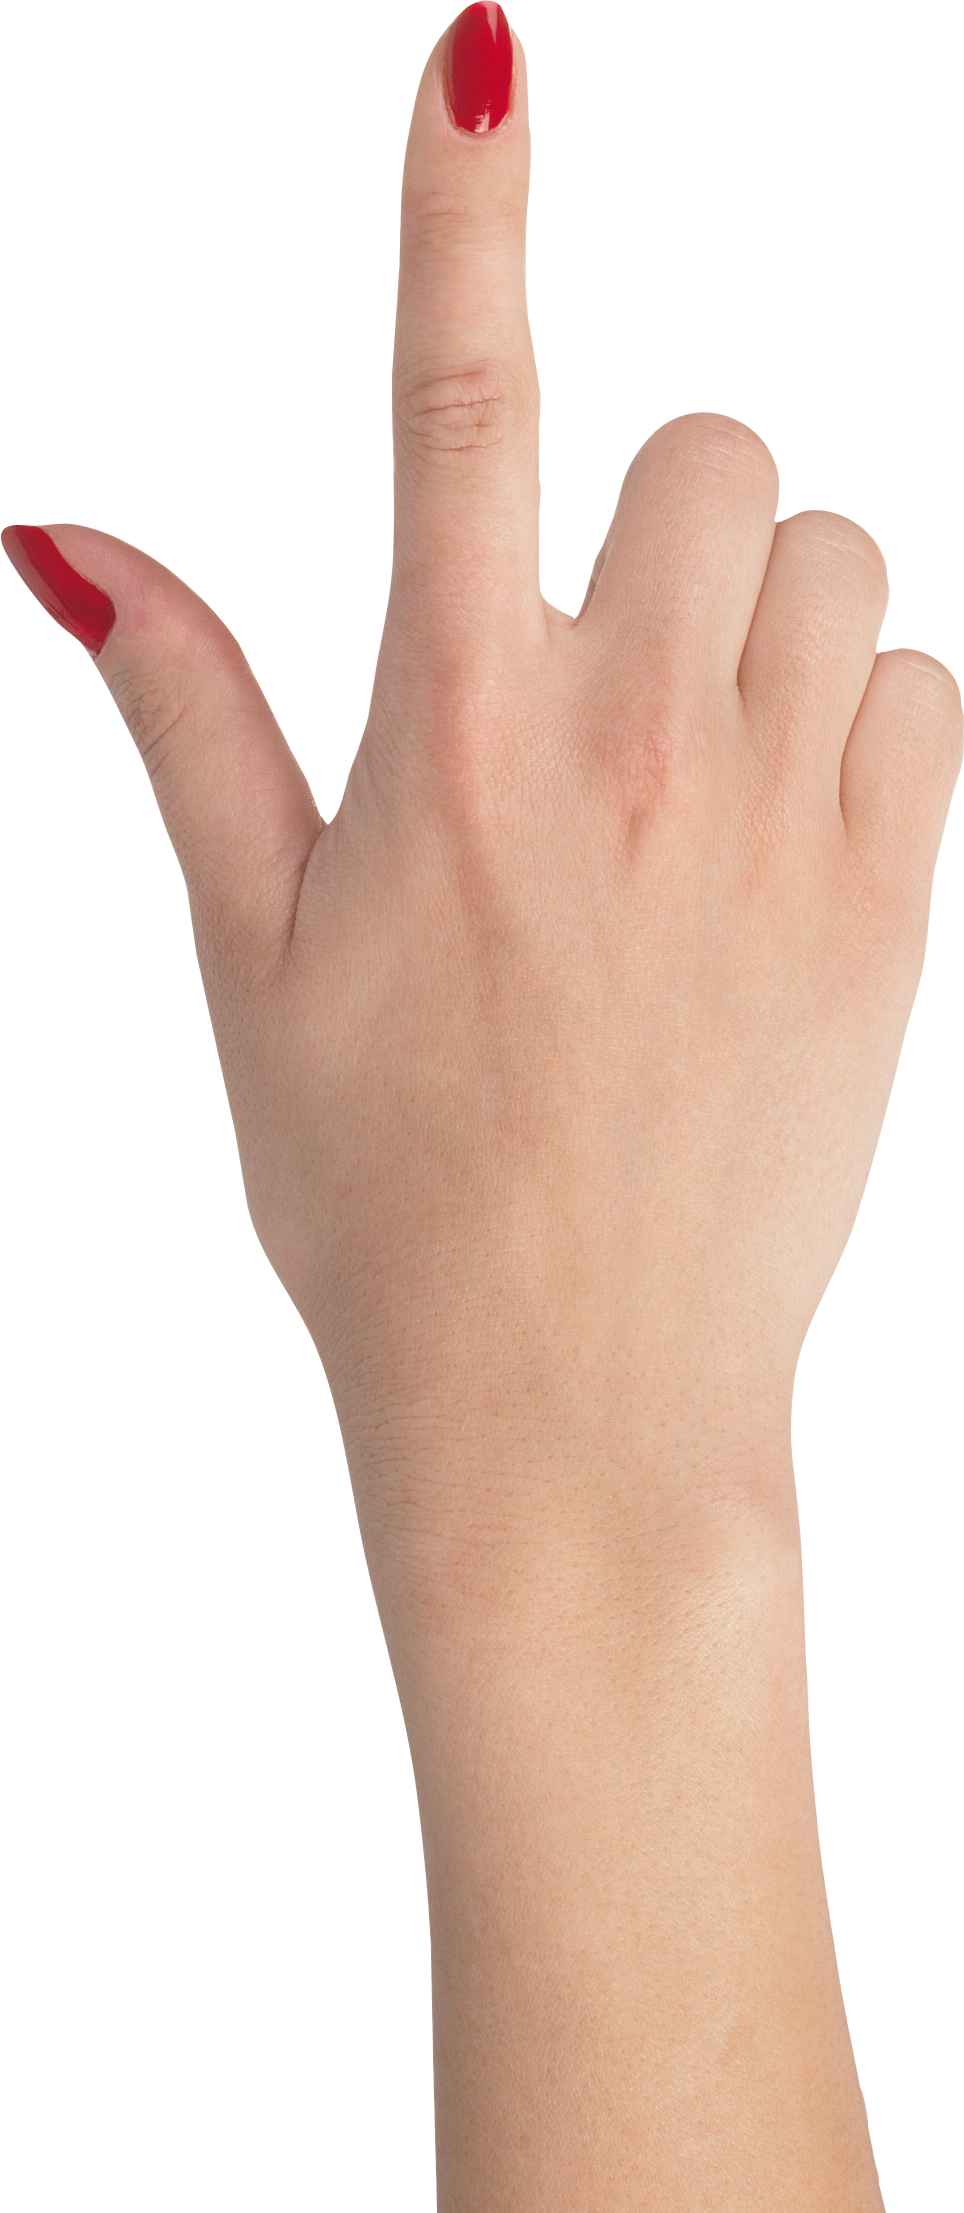 Nails clipart cute nail. Female hand pointing up